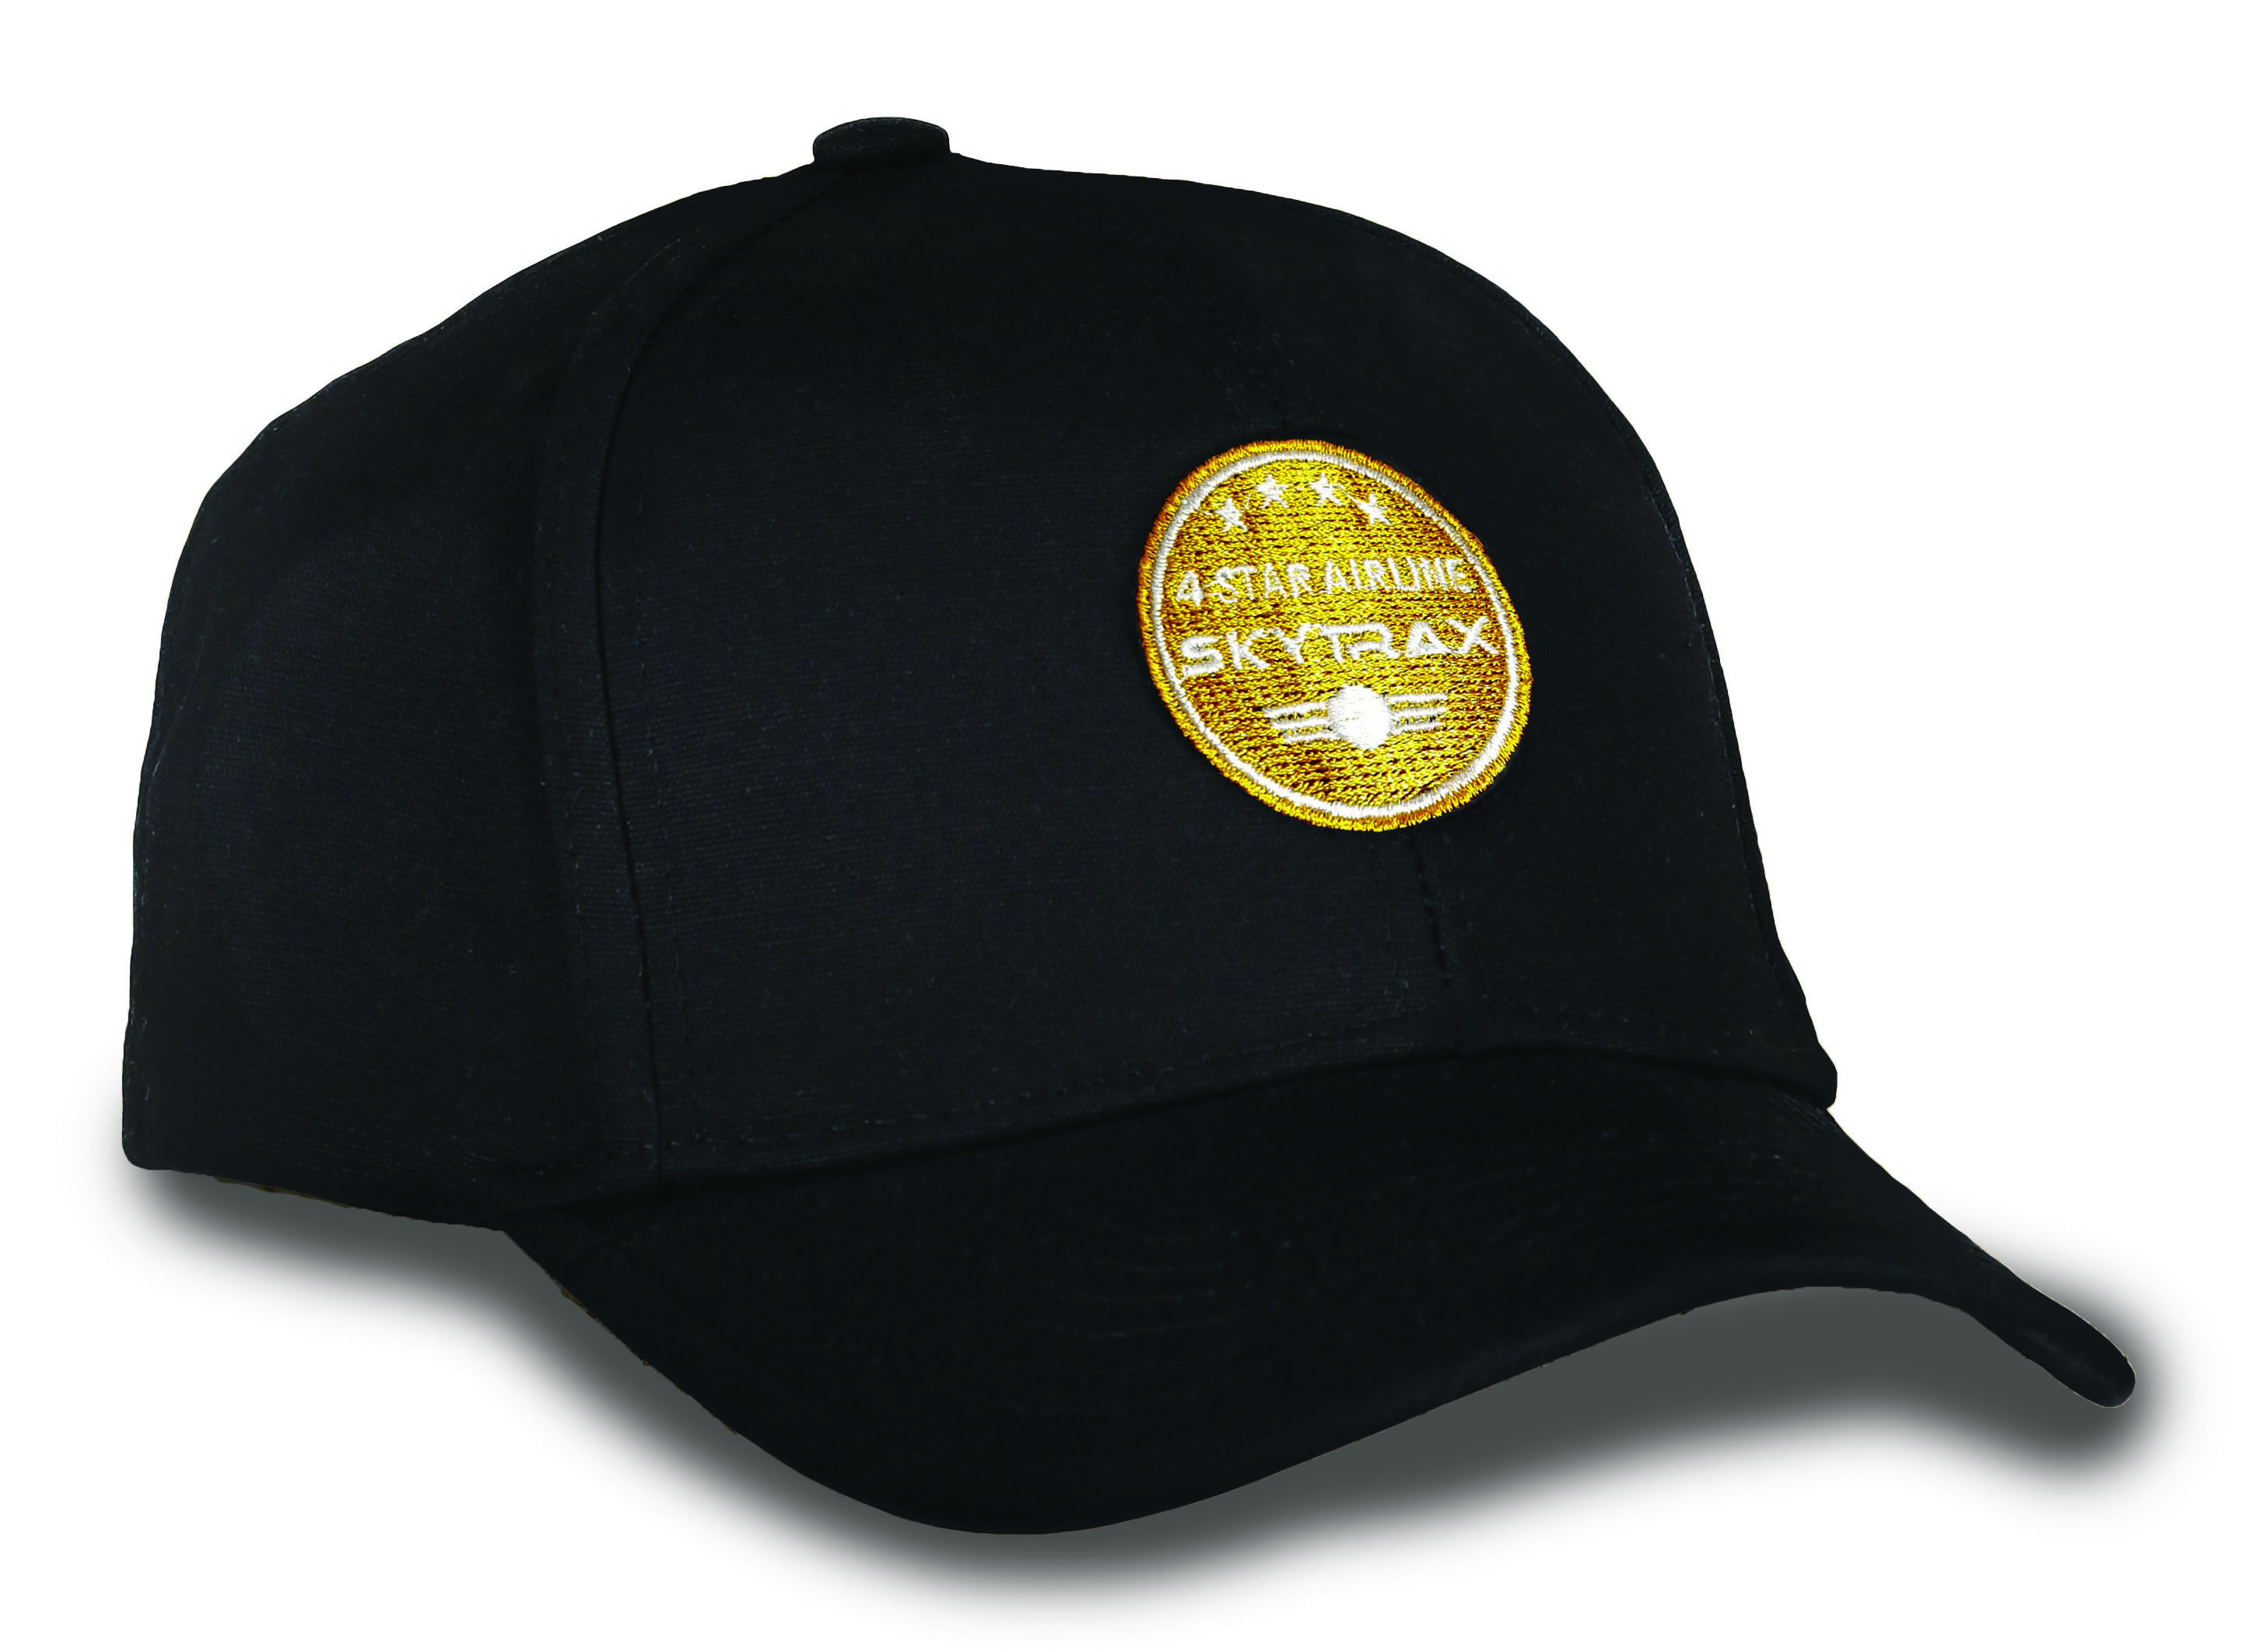 PAL Exclusives 4-Star Cap